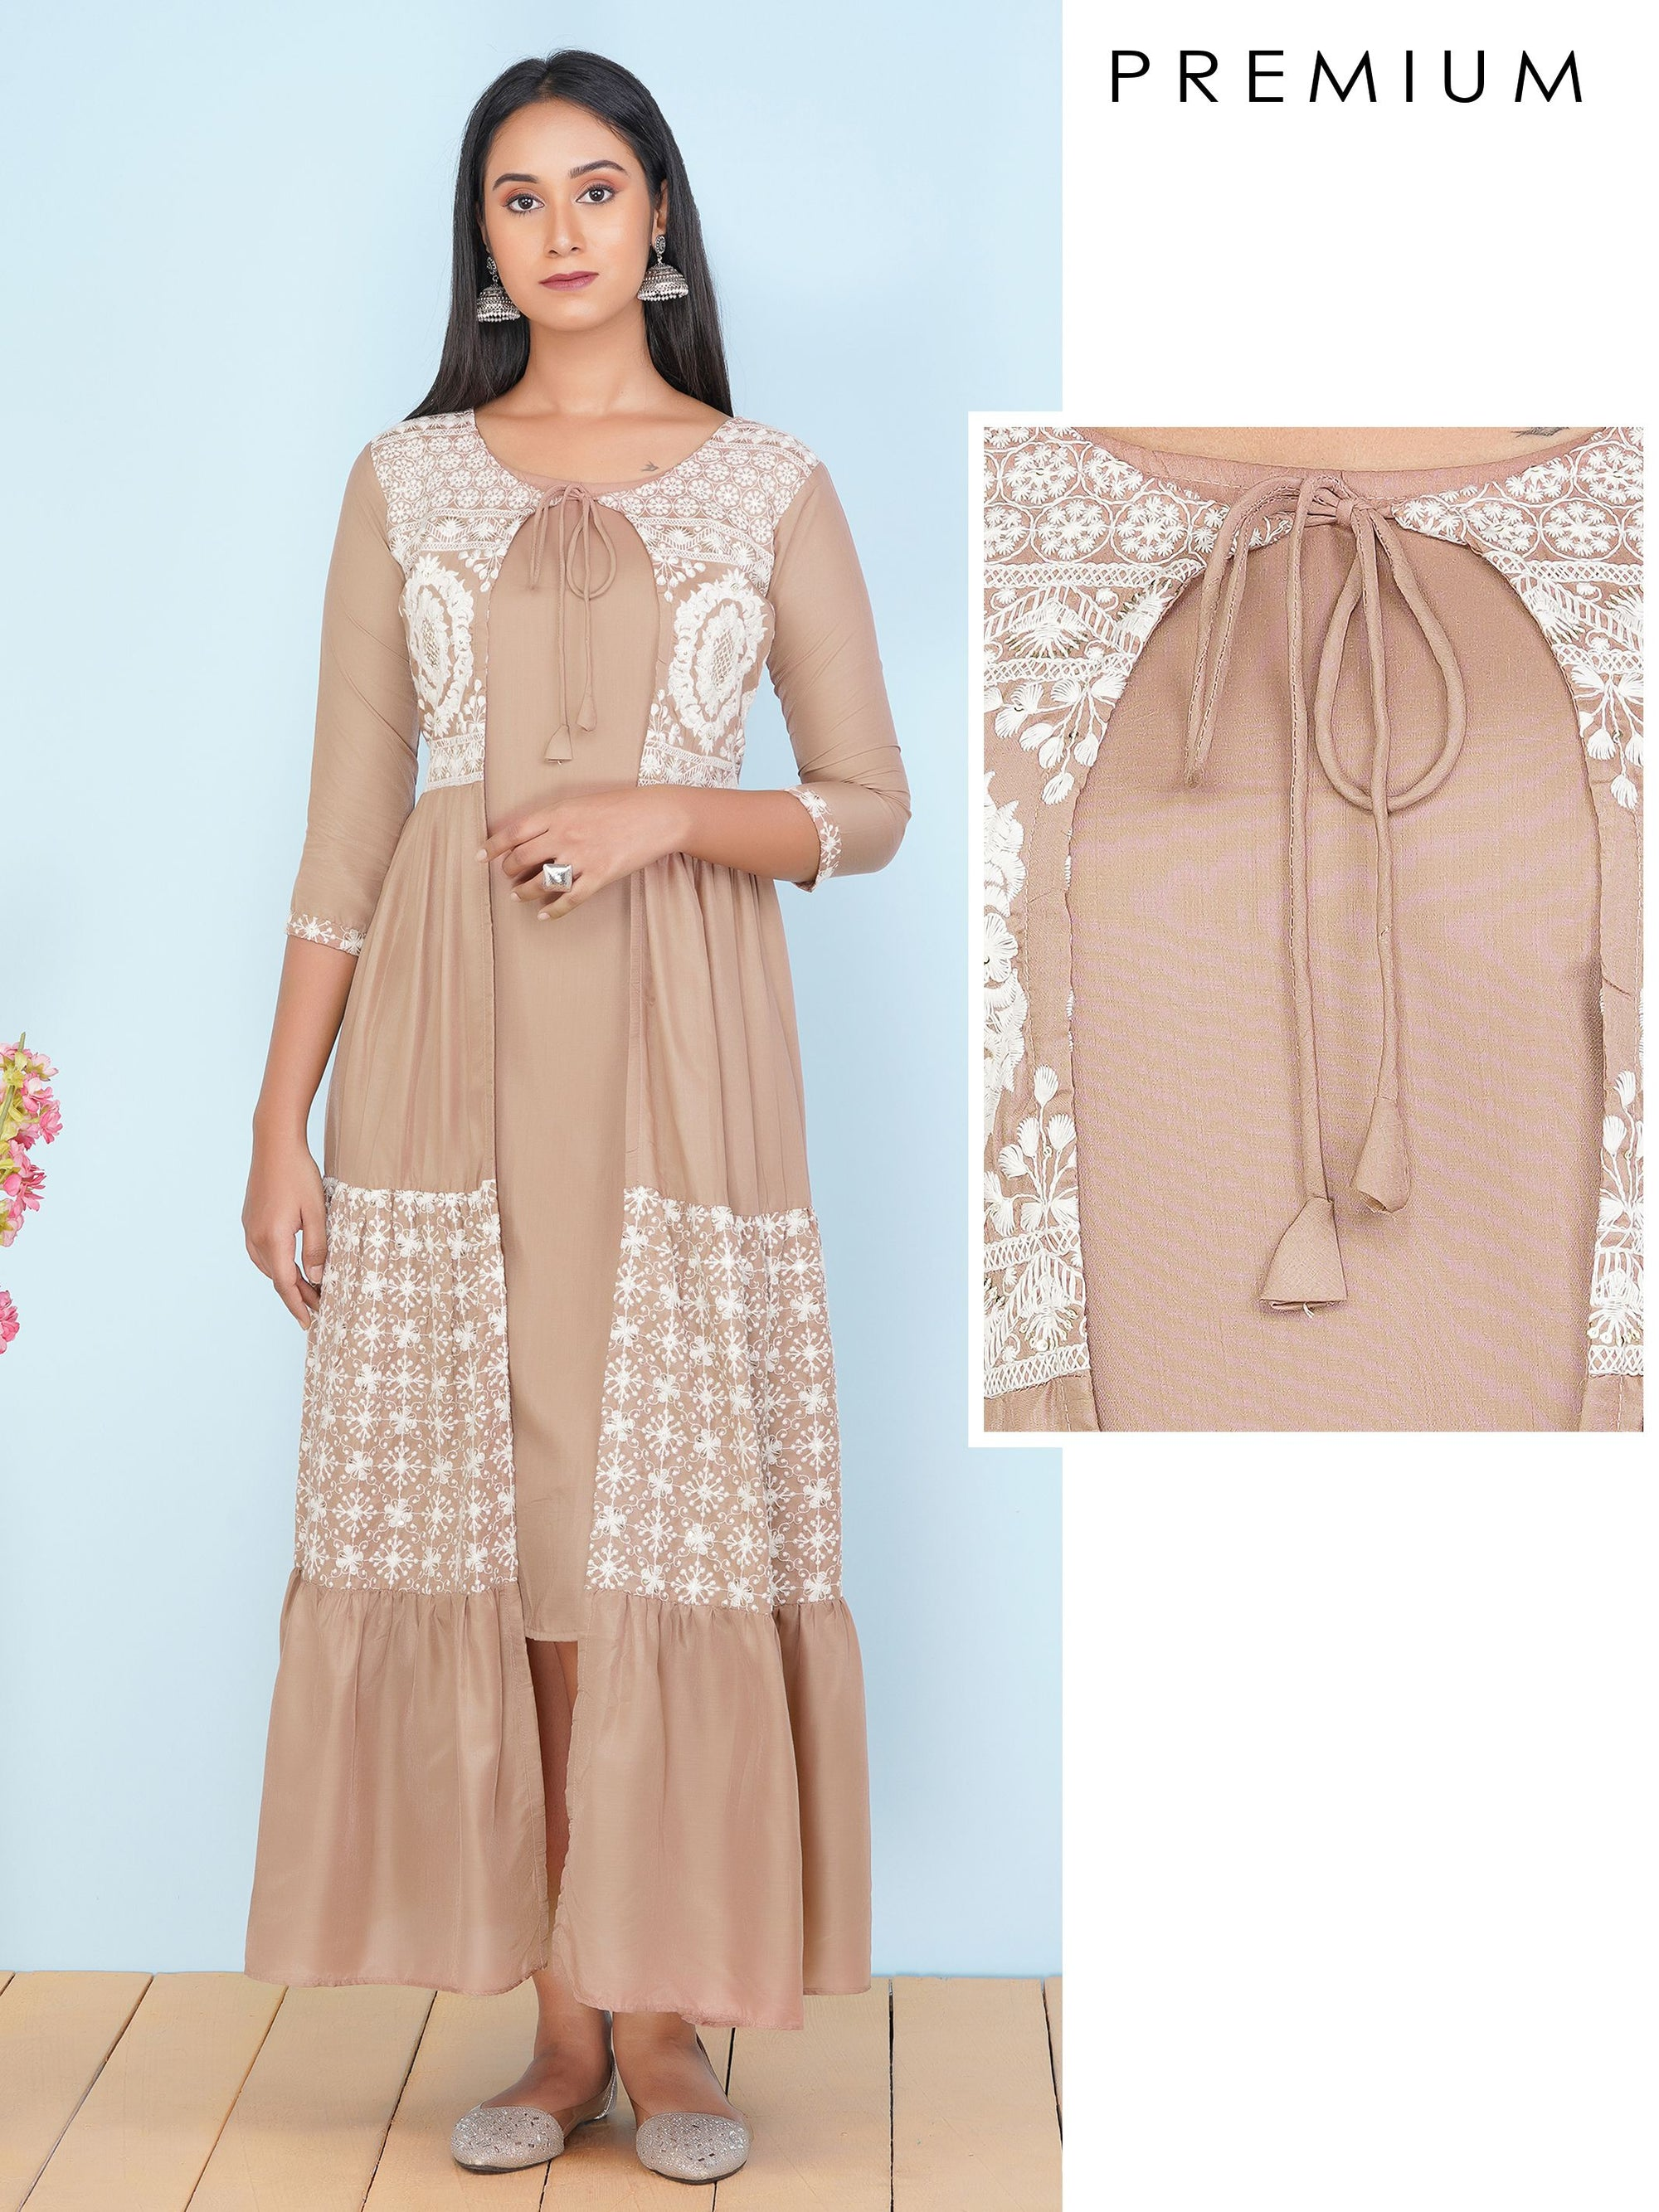 Solid Maxi Attached with Floral Chikankari Embroidered Jacket – Nude Brown